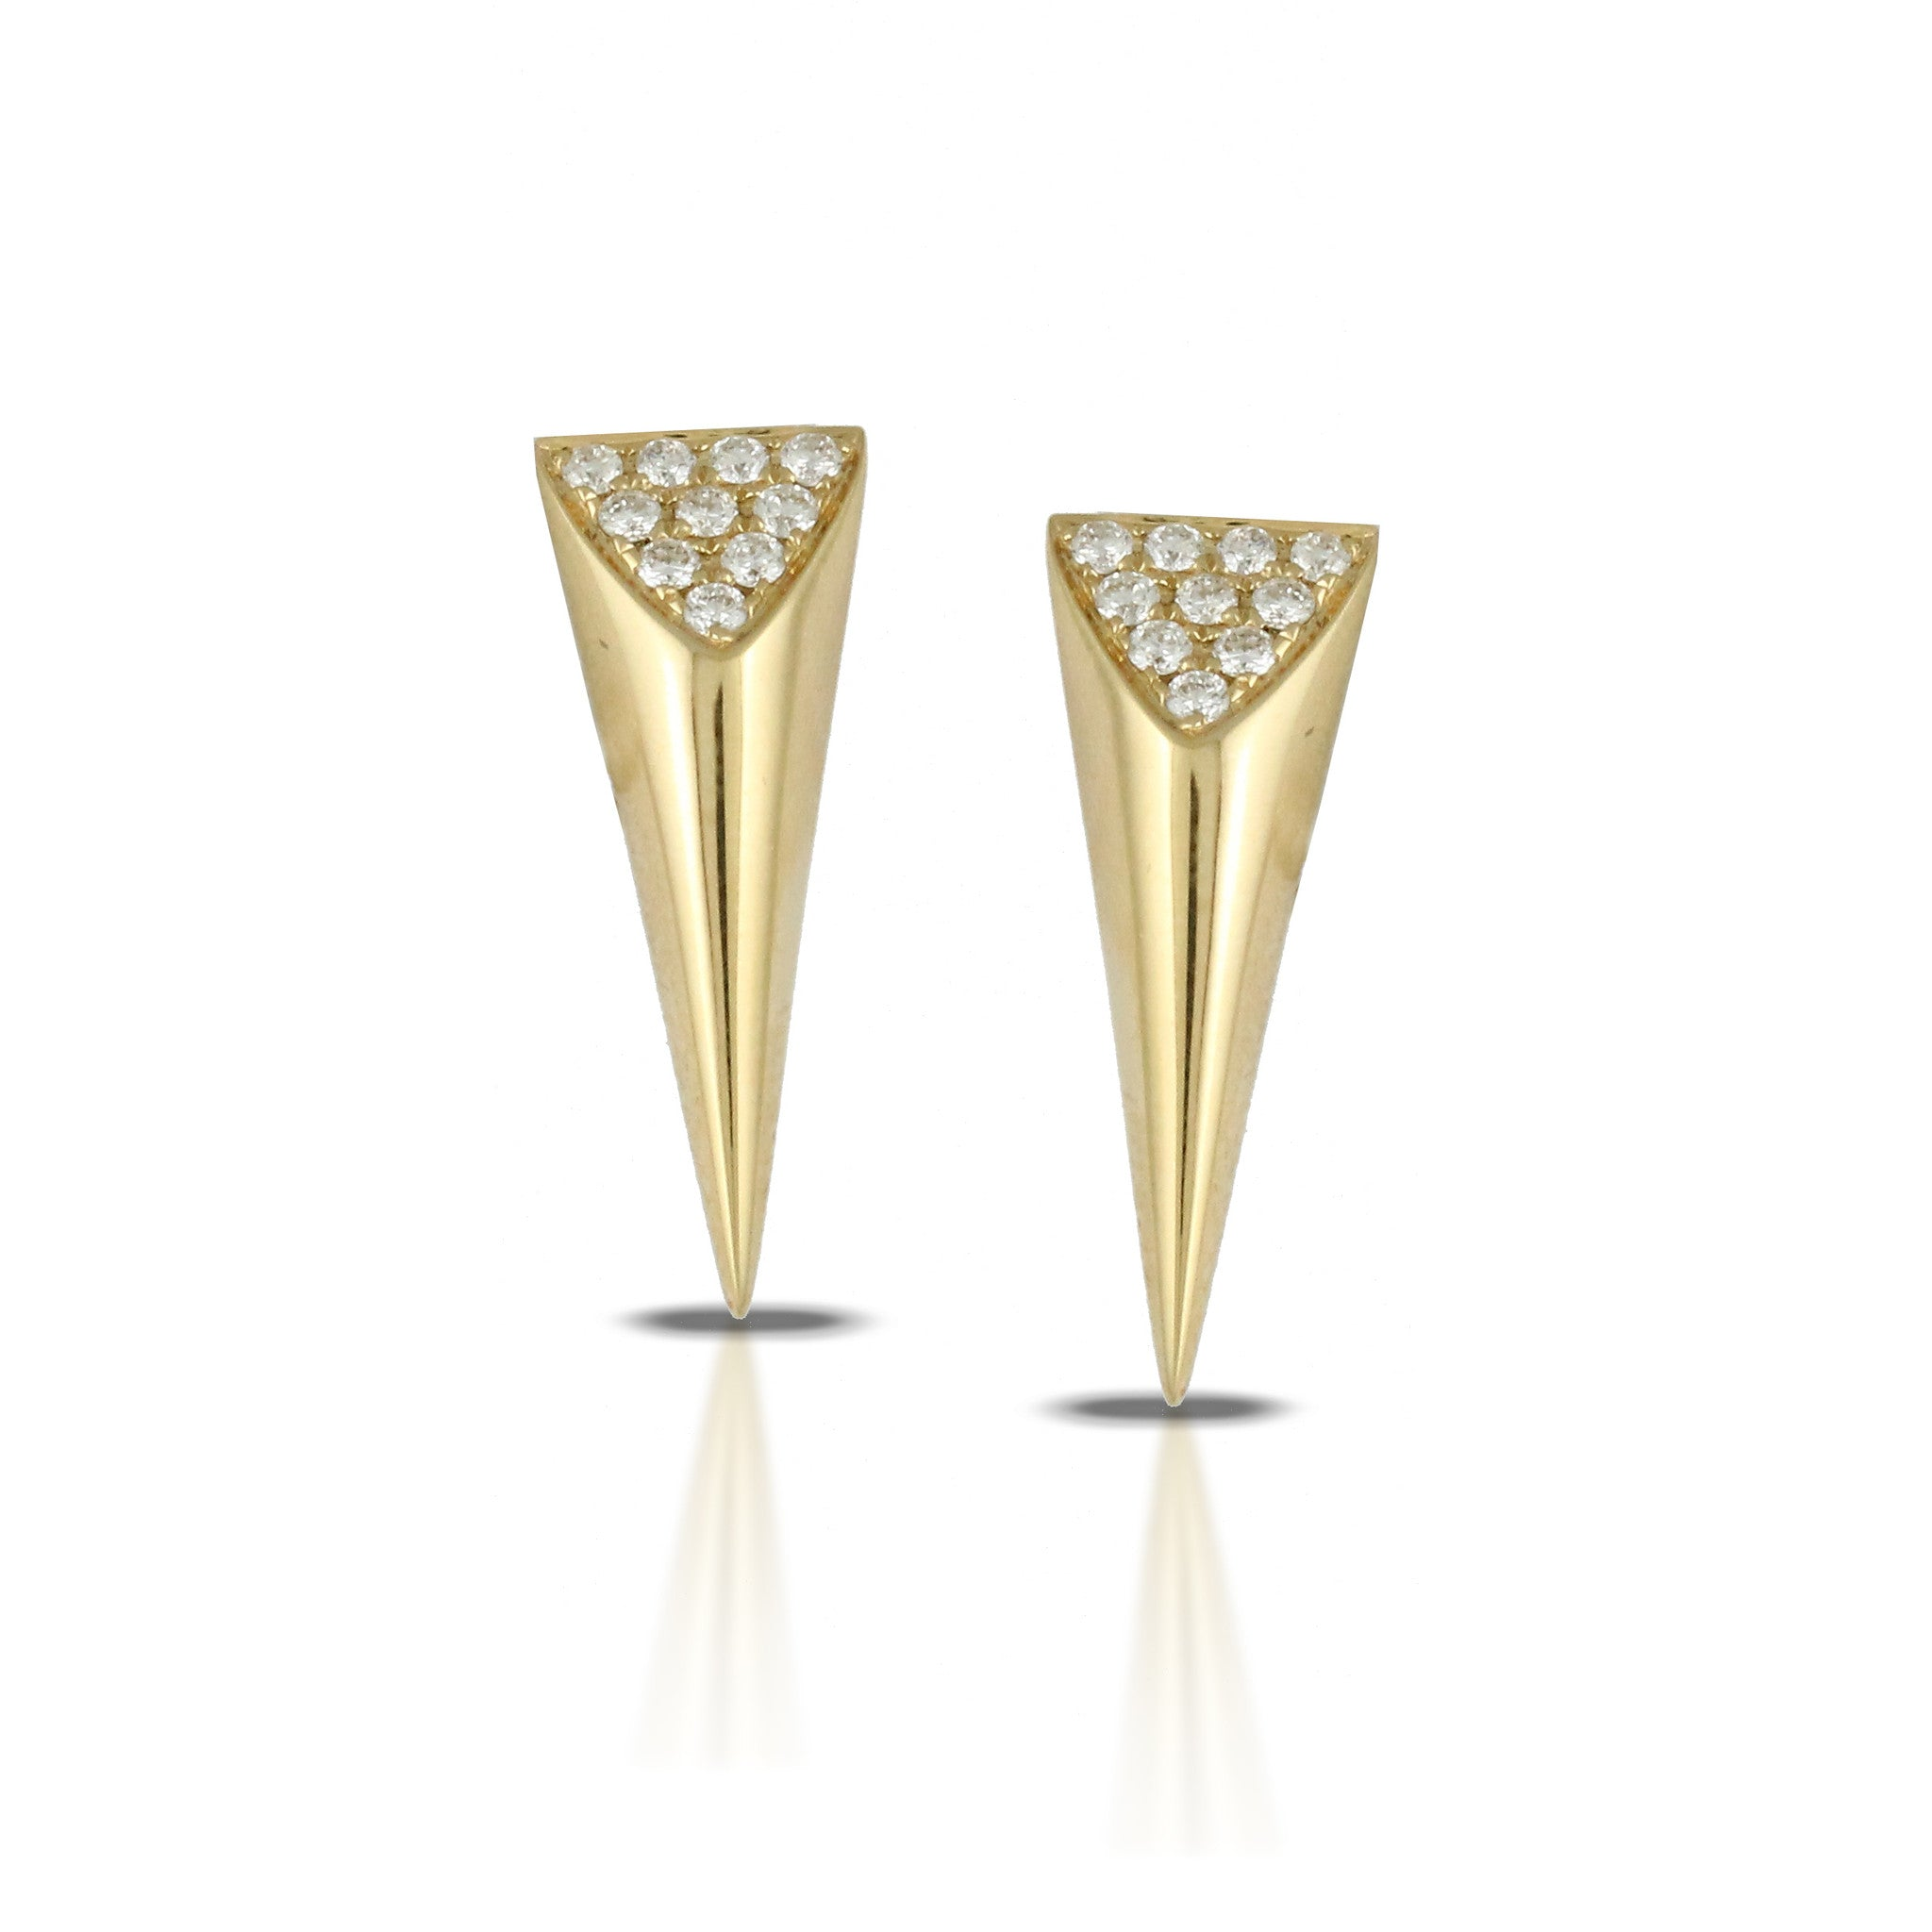 Doves Ladies'18k Yellow Gold Diamond Geometric Earrings by Doron Paloma